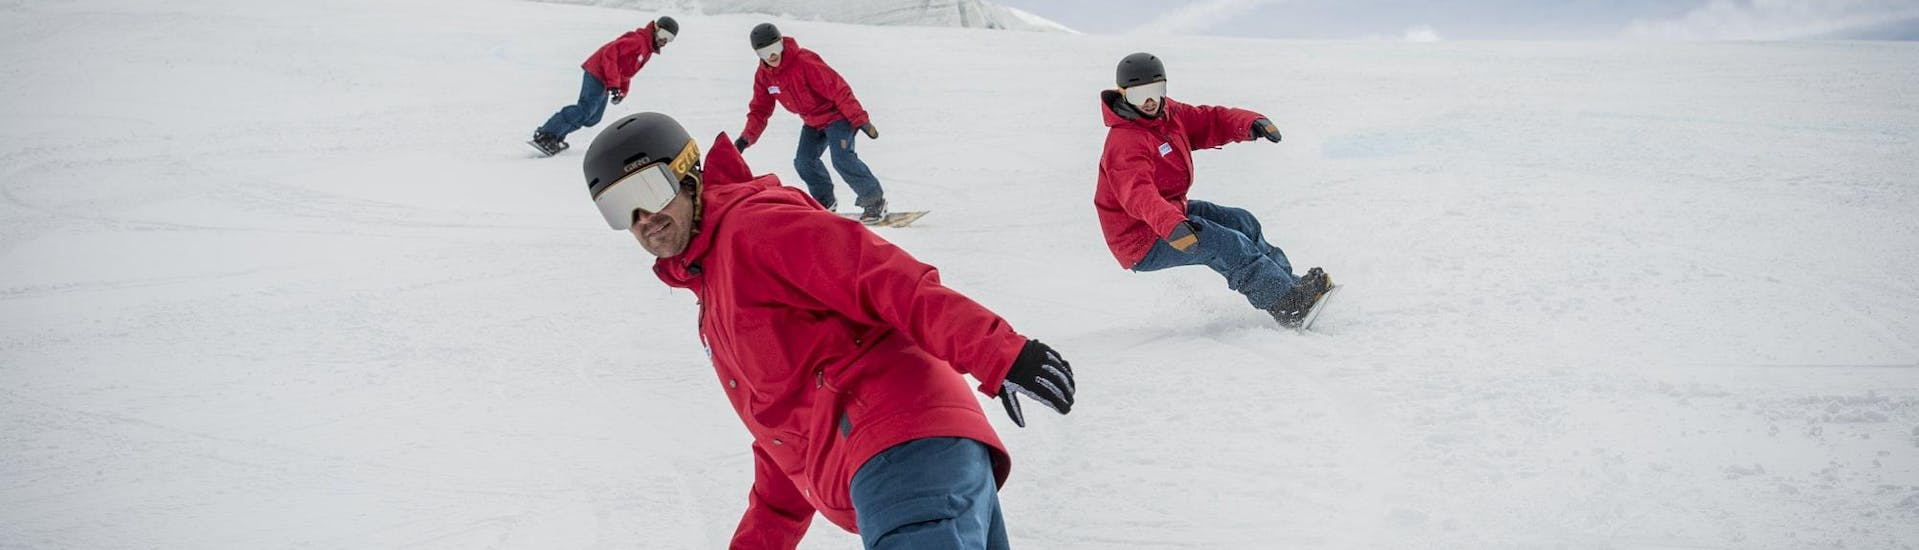 Snowboarding Lessons (6-16 y.) for Adv. Boarders - Half Day